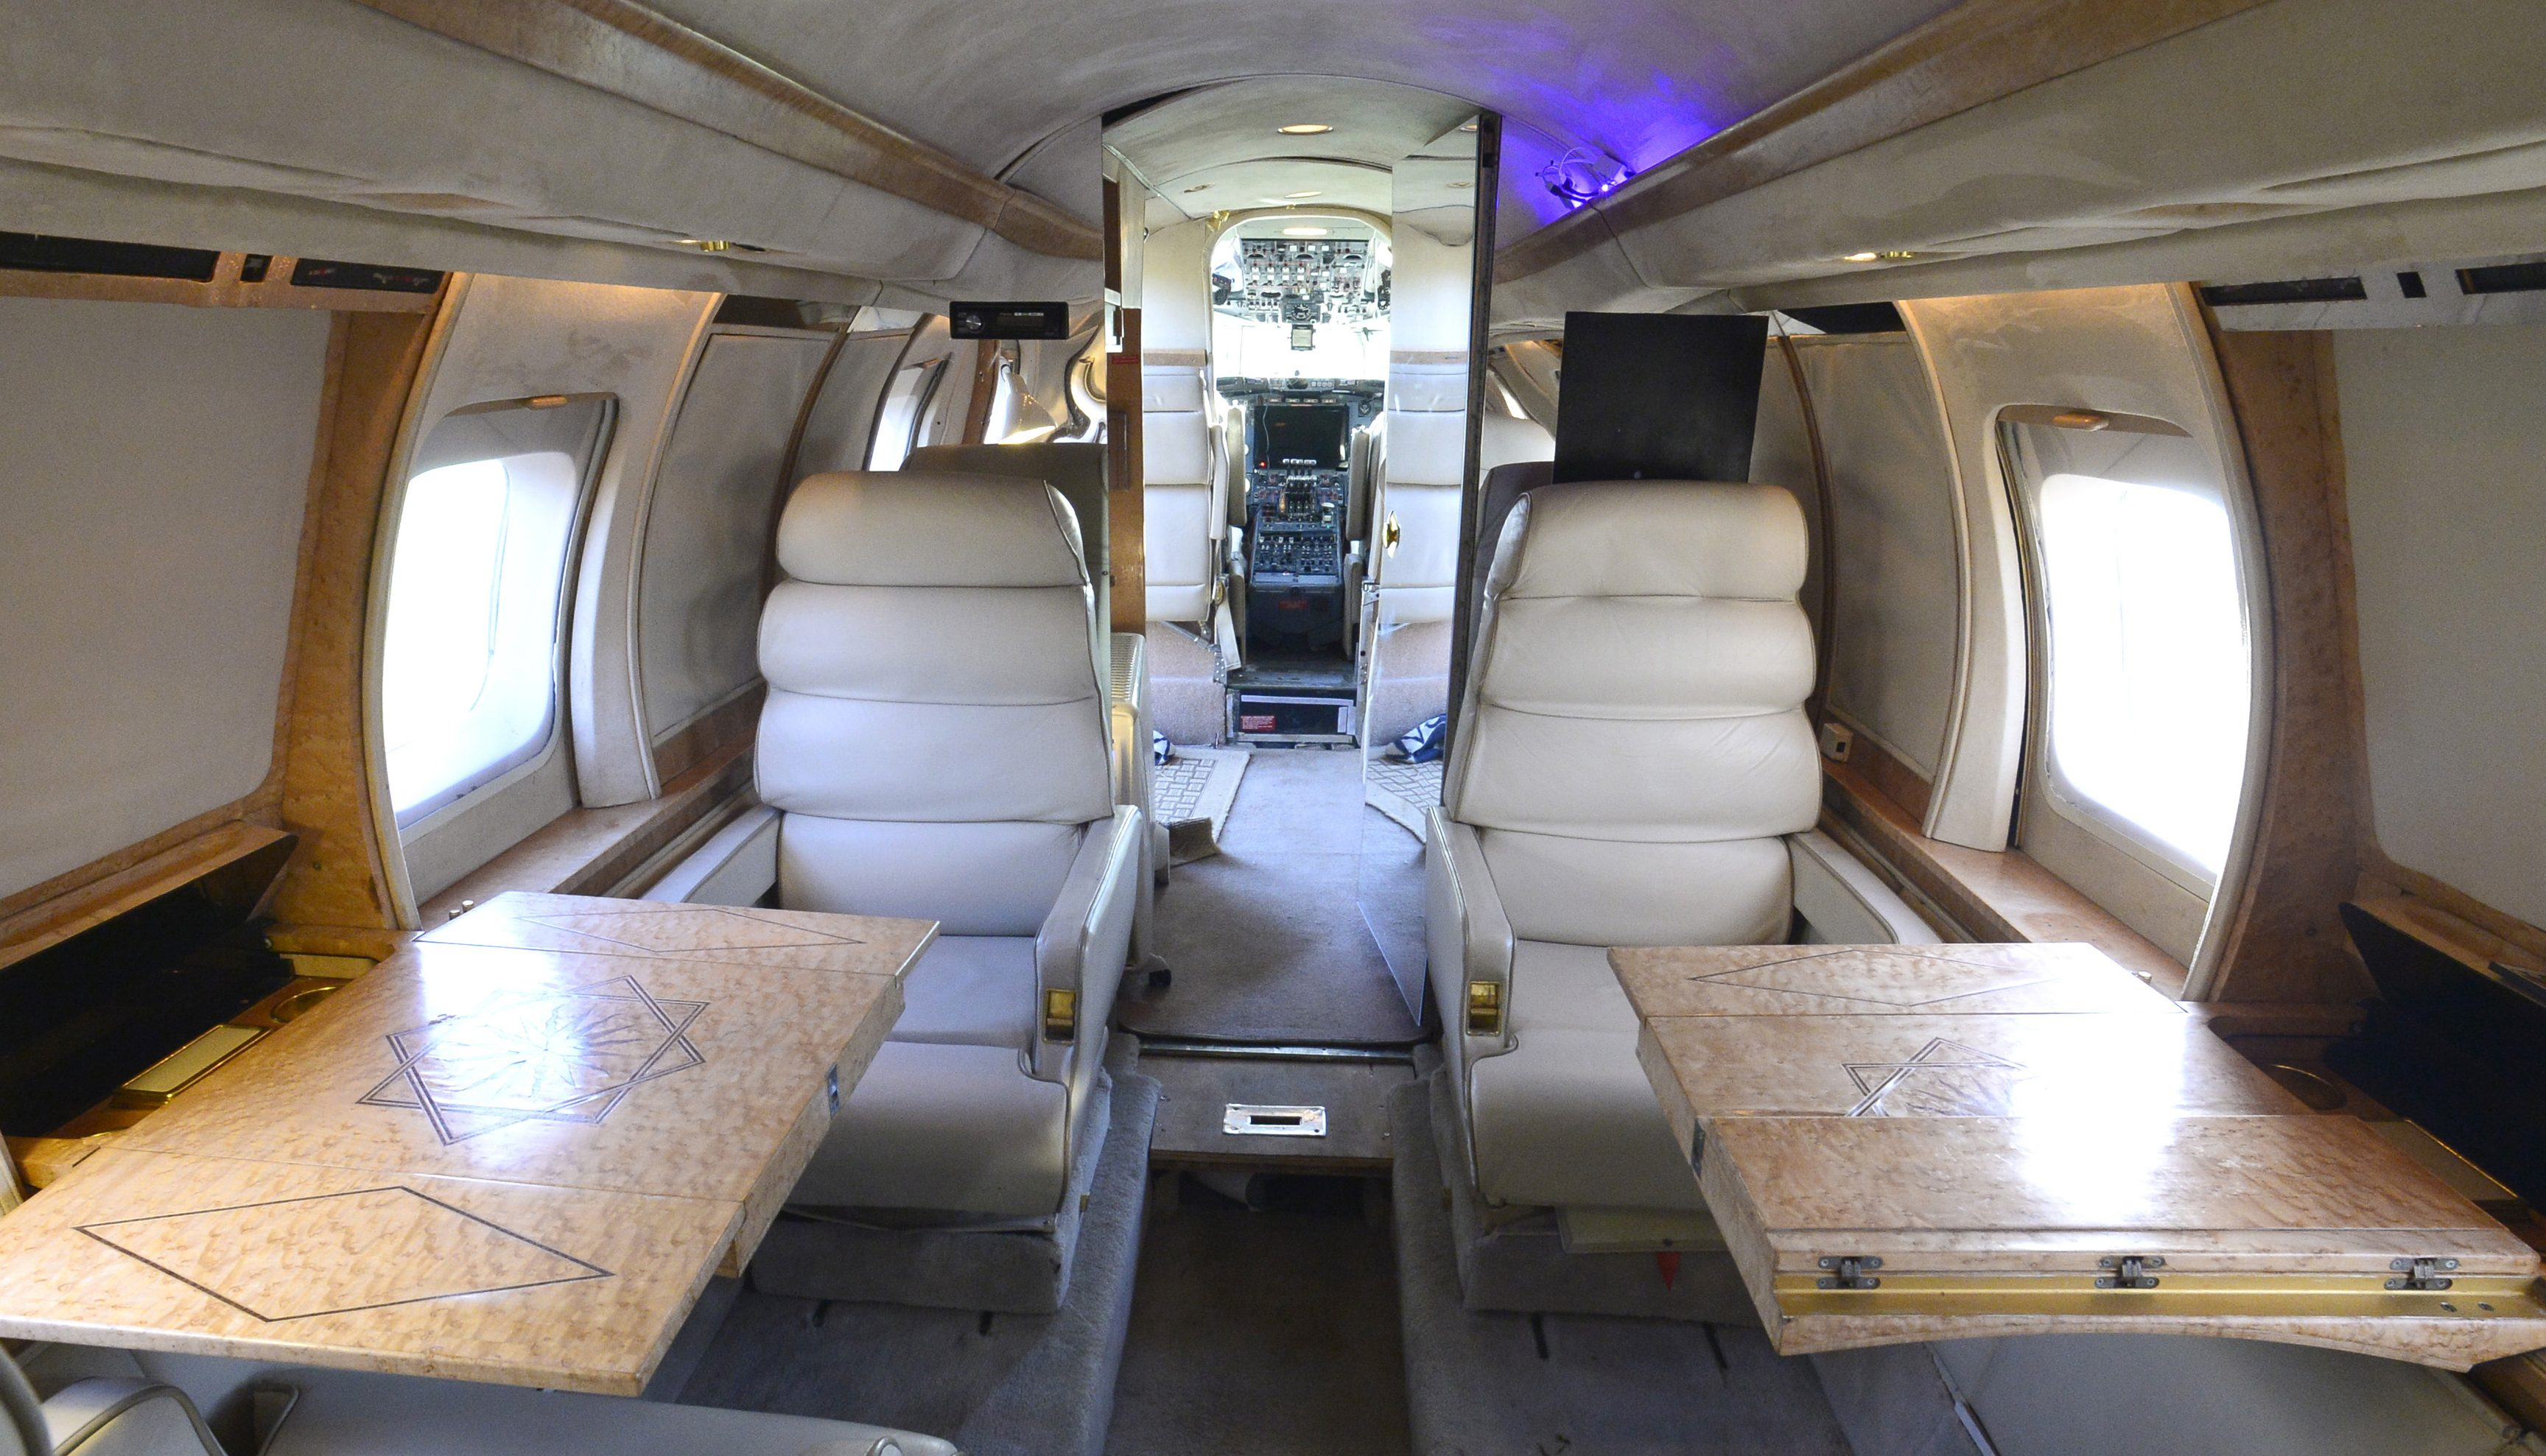 The inside of a luxury Jetstar private jet